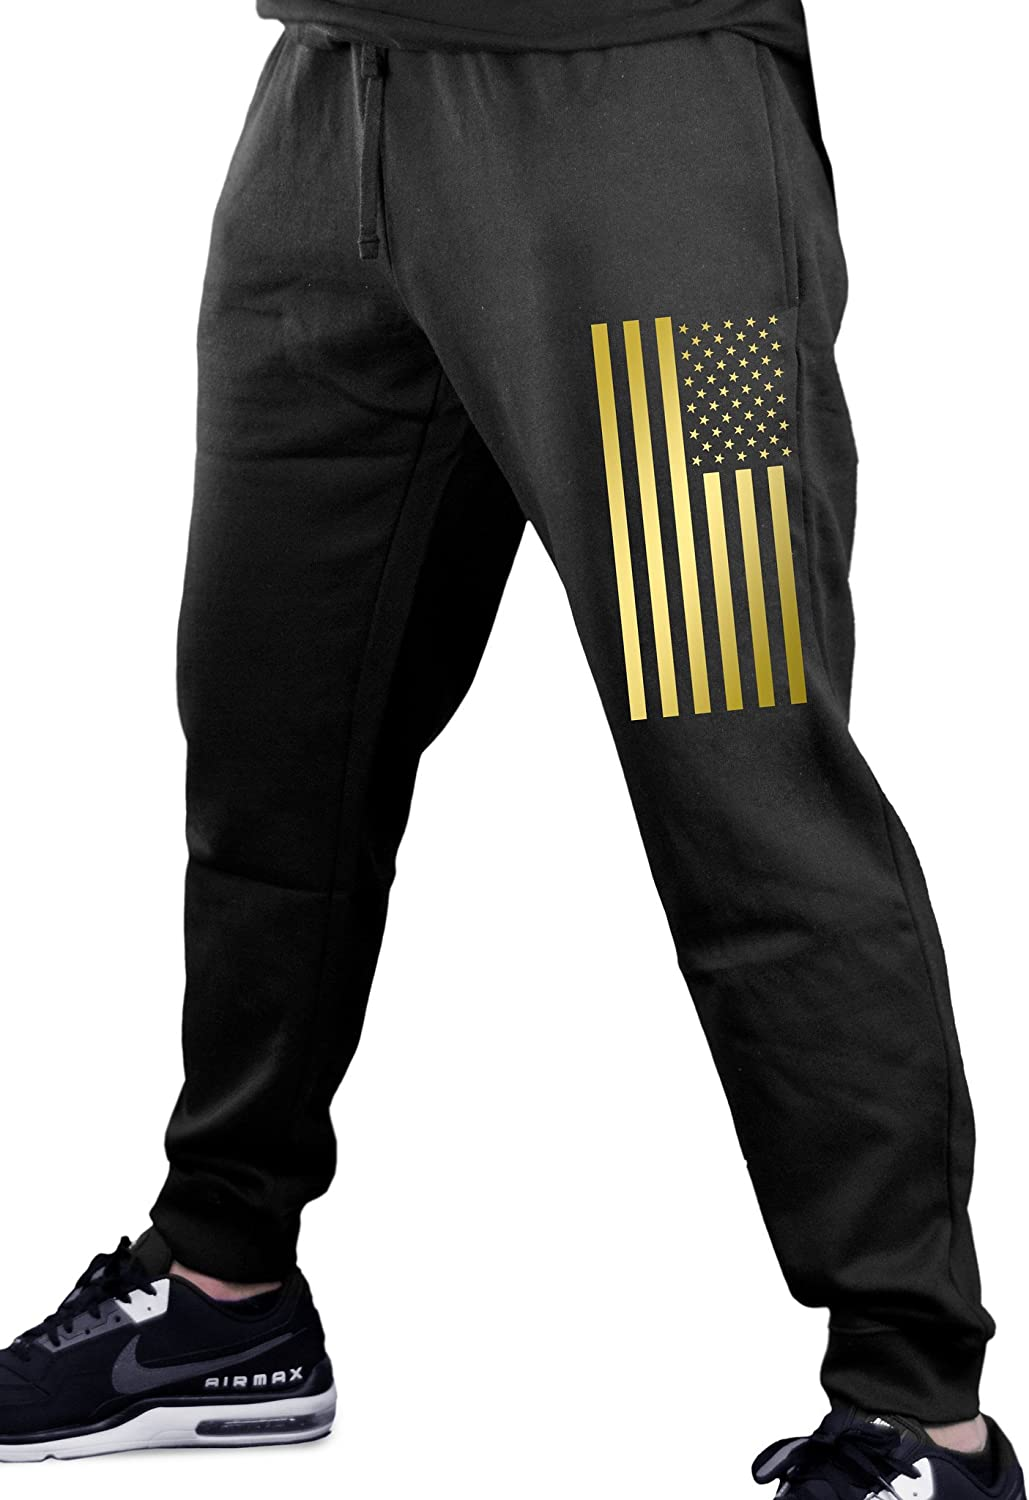 Easy-to-use Interstate Apparel Reflective Gold US Black Fleece Flag Gy Direct store Men's